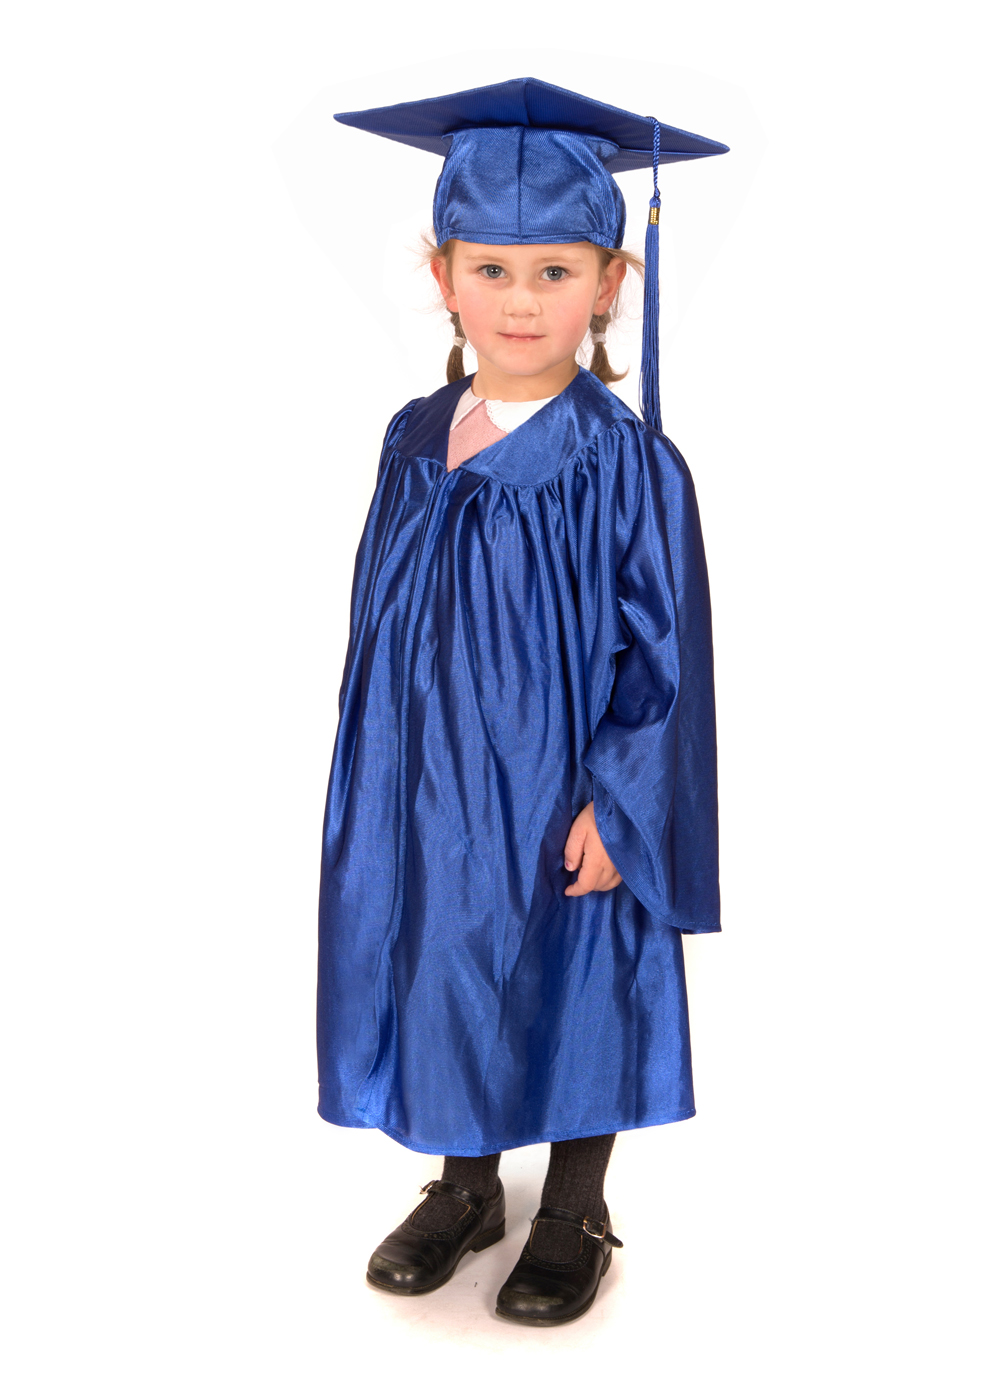 Shiny Nursery Graduation Gown and Cap - Graduation Gowns in Europe ...